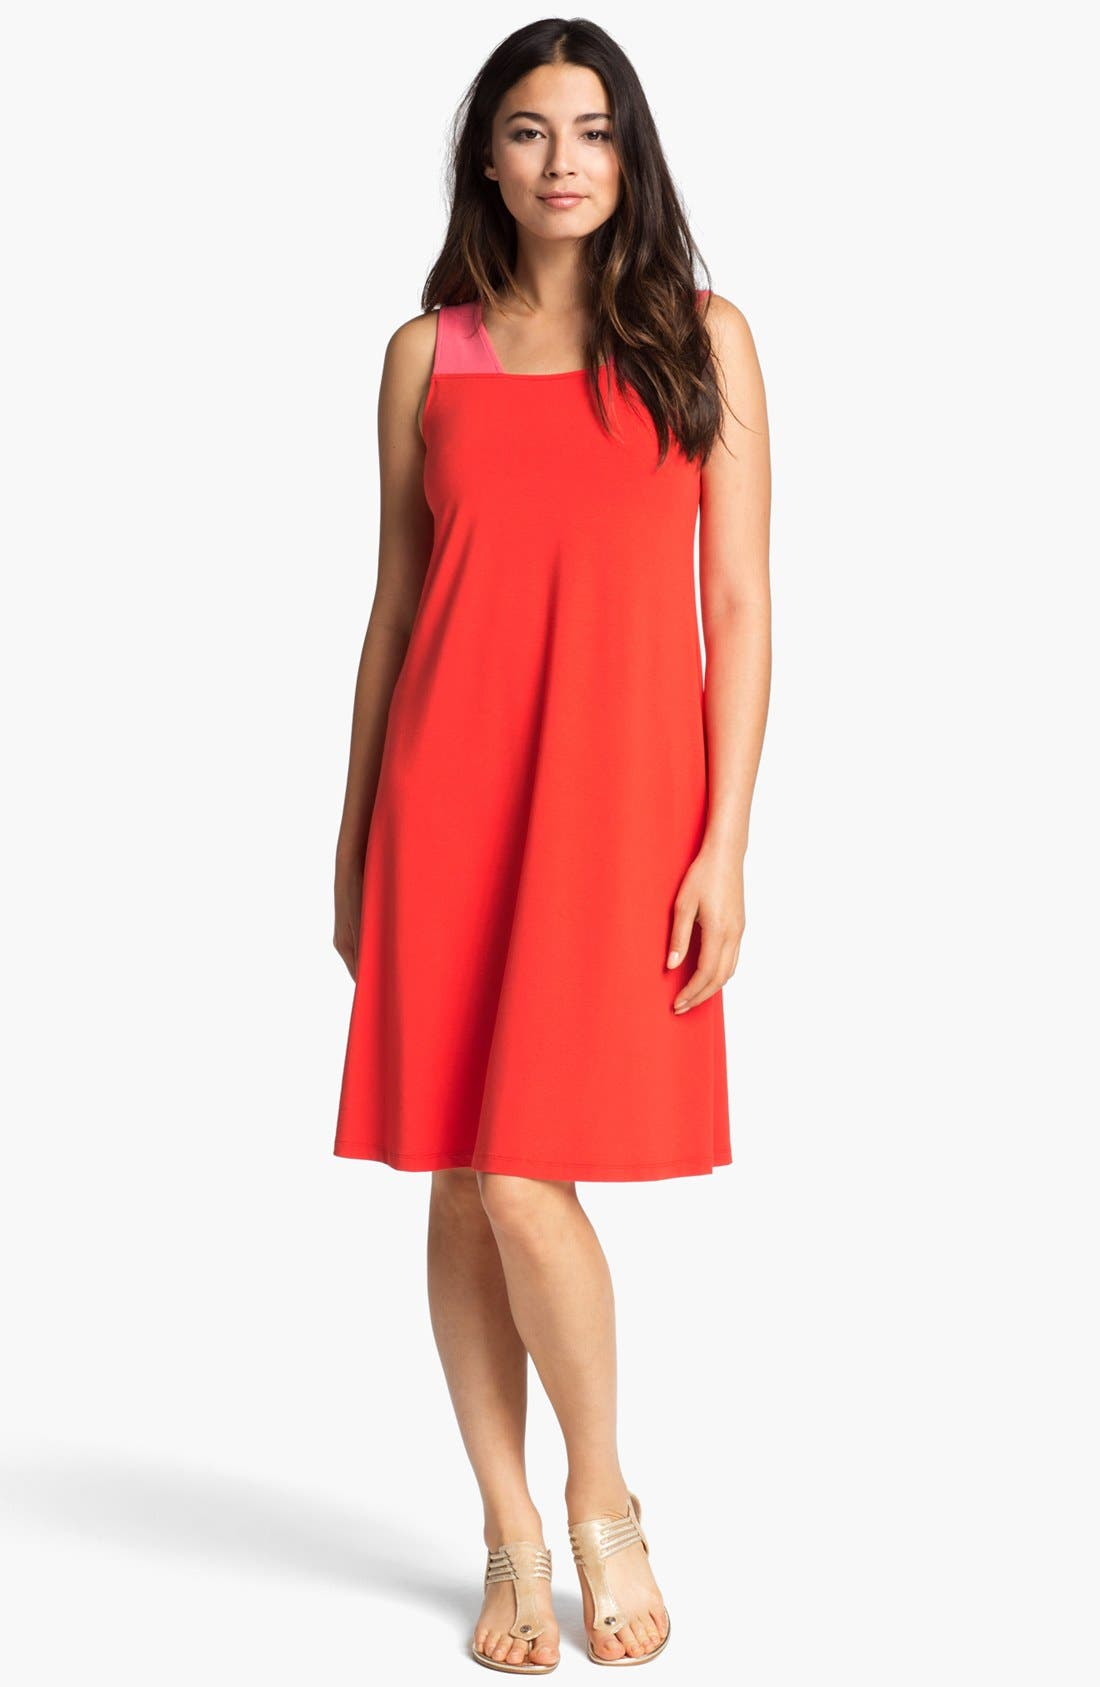 Alternate Image 1 Selected - Eileen Fisher Cutout Two Tone Dress (Online Only)